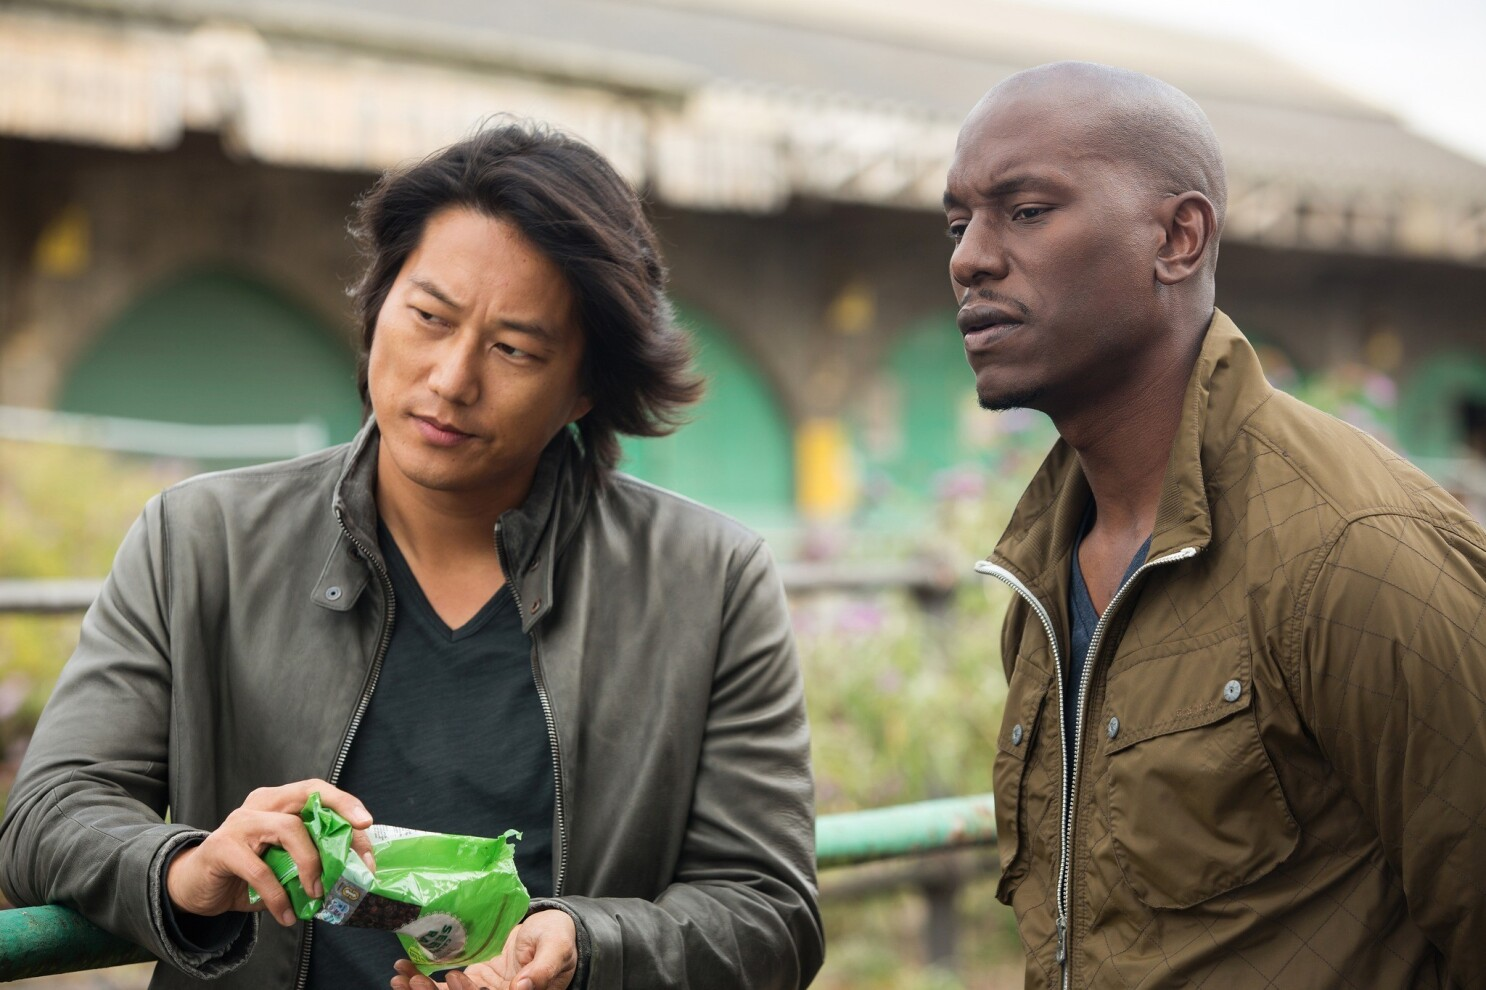 Fast & Furious 9' trailer: Sung Kang on Justice for Han - Los ...